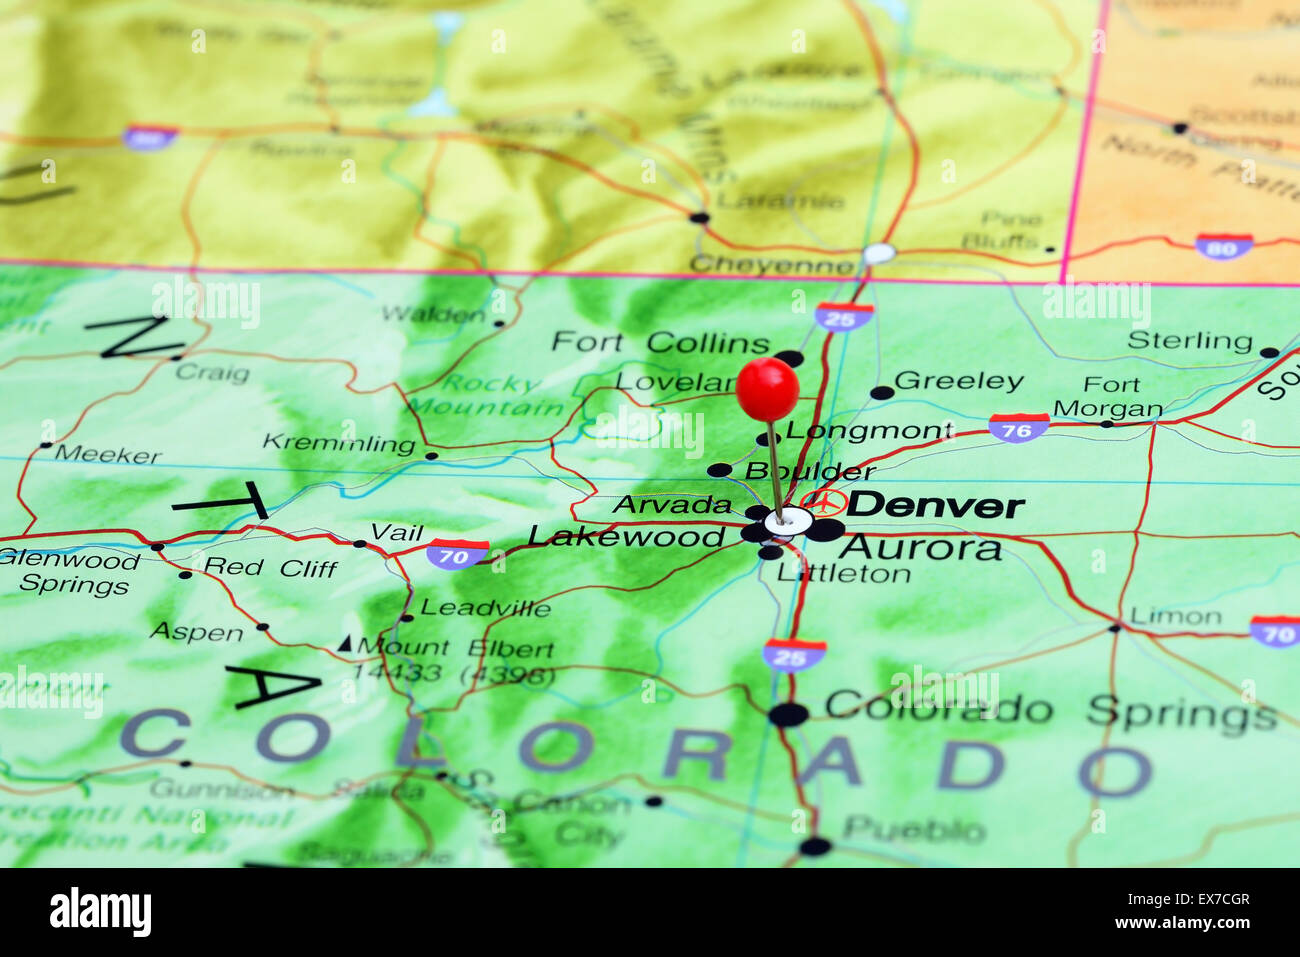 Denver pinned on a map of USA Stock Photo: 84986071 - Alamy on